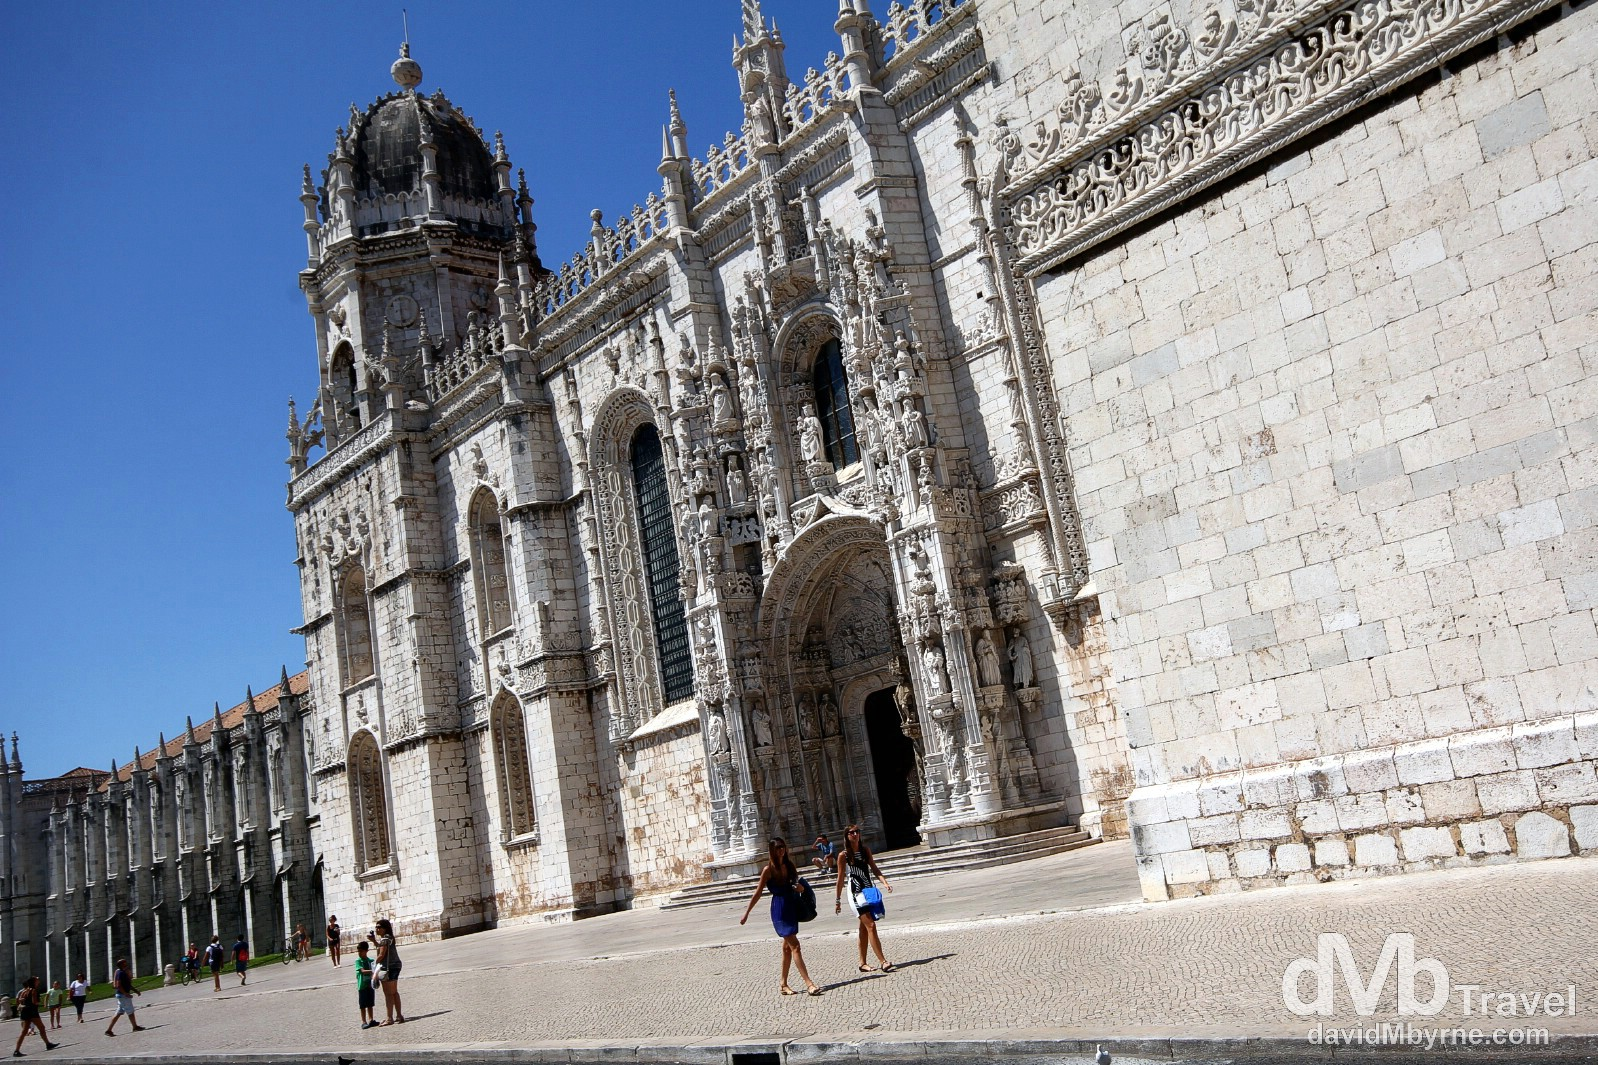 Jeronimos Monastery, Belem, Lisbon, Portugal. August 26th 2013.